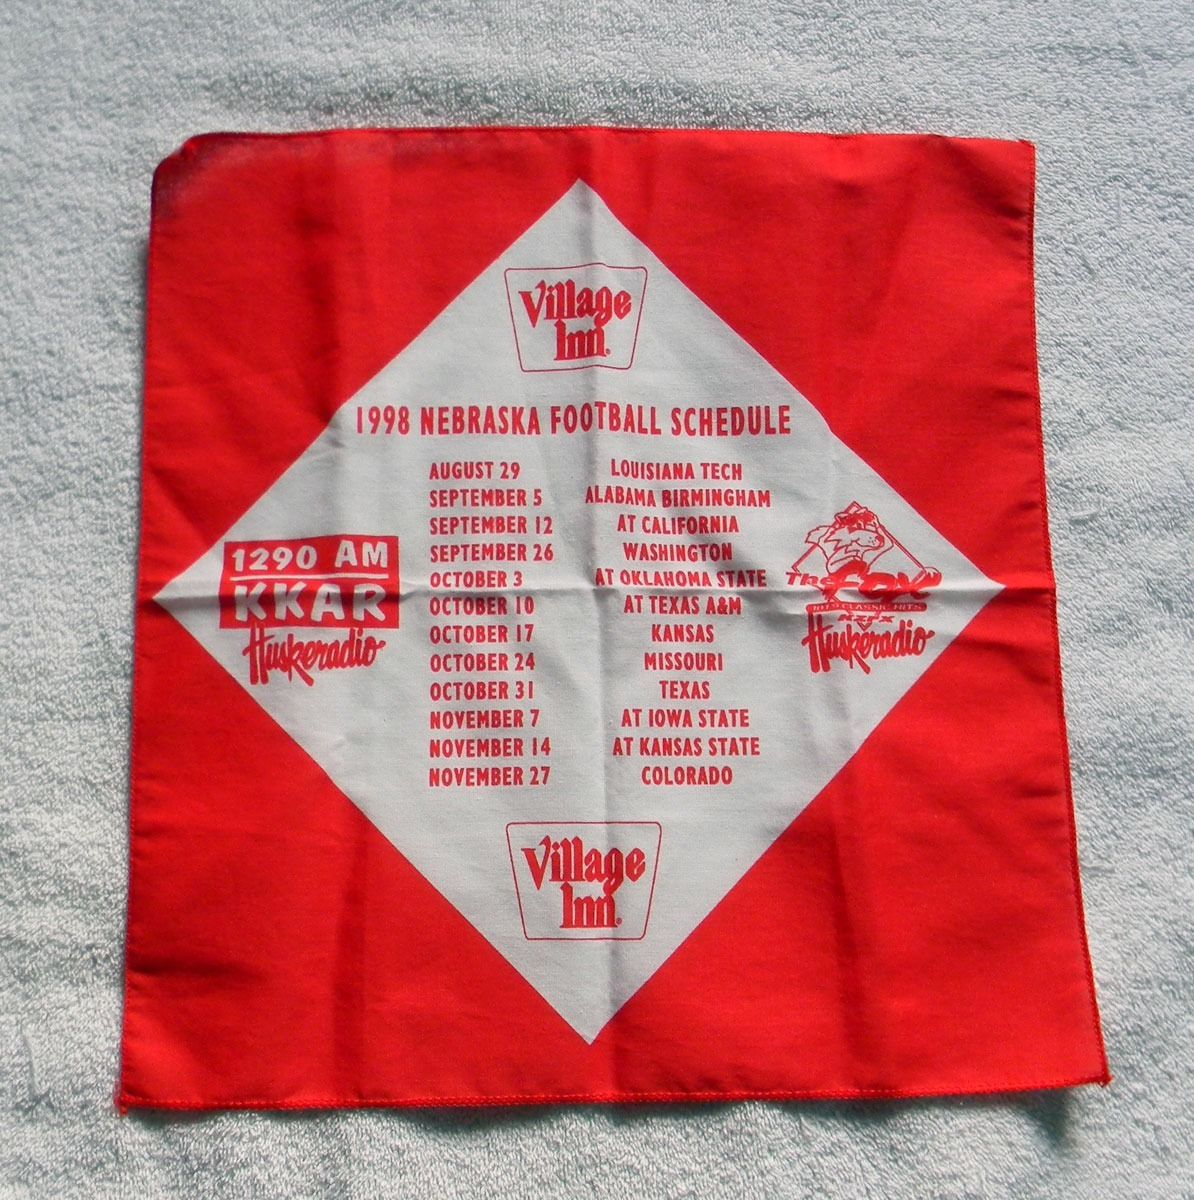 1998 NEBRASKA FOOTBALL SCHEDULE BANDANA HUSKER COTTON RED & WHITE GO BIG RED